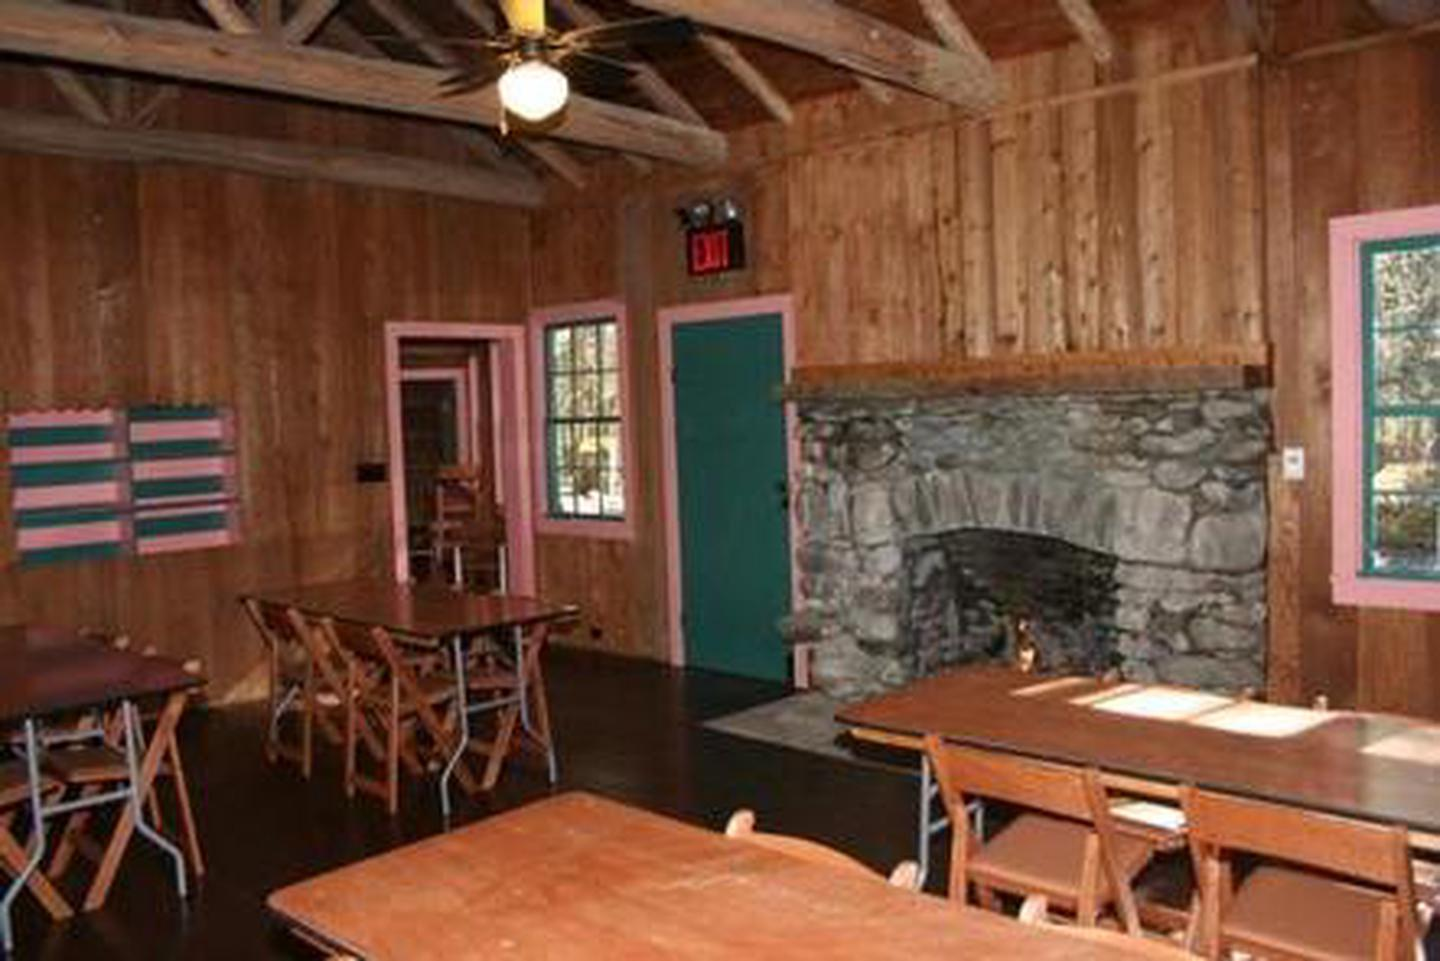 Main Room of Spence CabinMain Room showing tables and chairs and gas fireplace